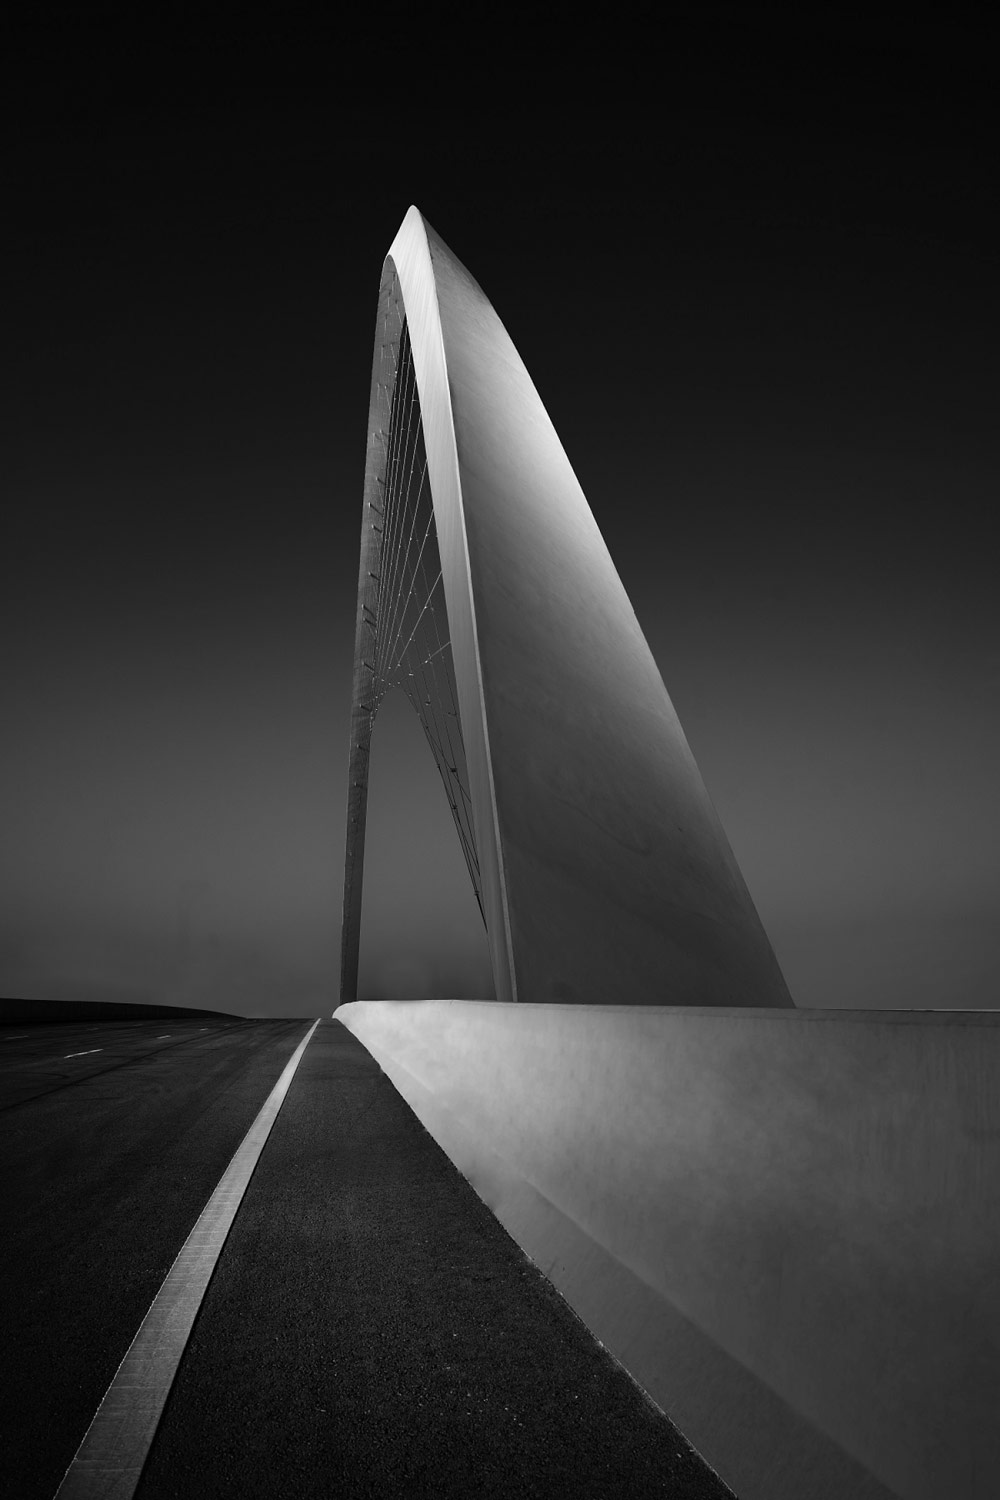 A Look at a Bridge I, © Minas STRATIGOS, 1st Place, Non-Professional - Architectural, Zebra Awards - TZIPAC Black and White Photographer of the Year